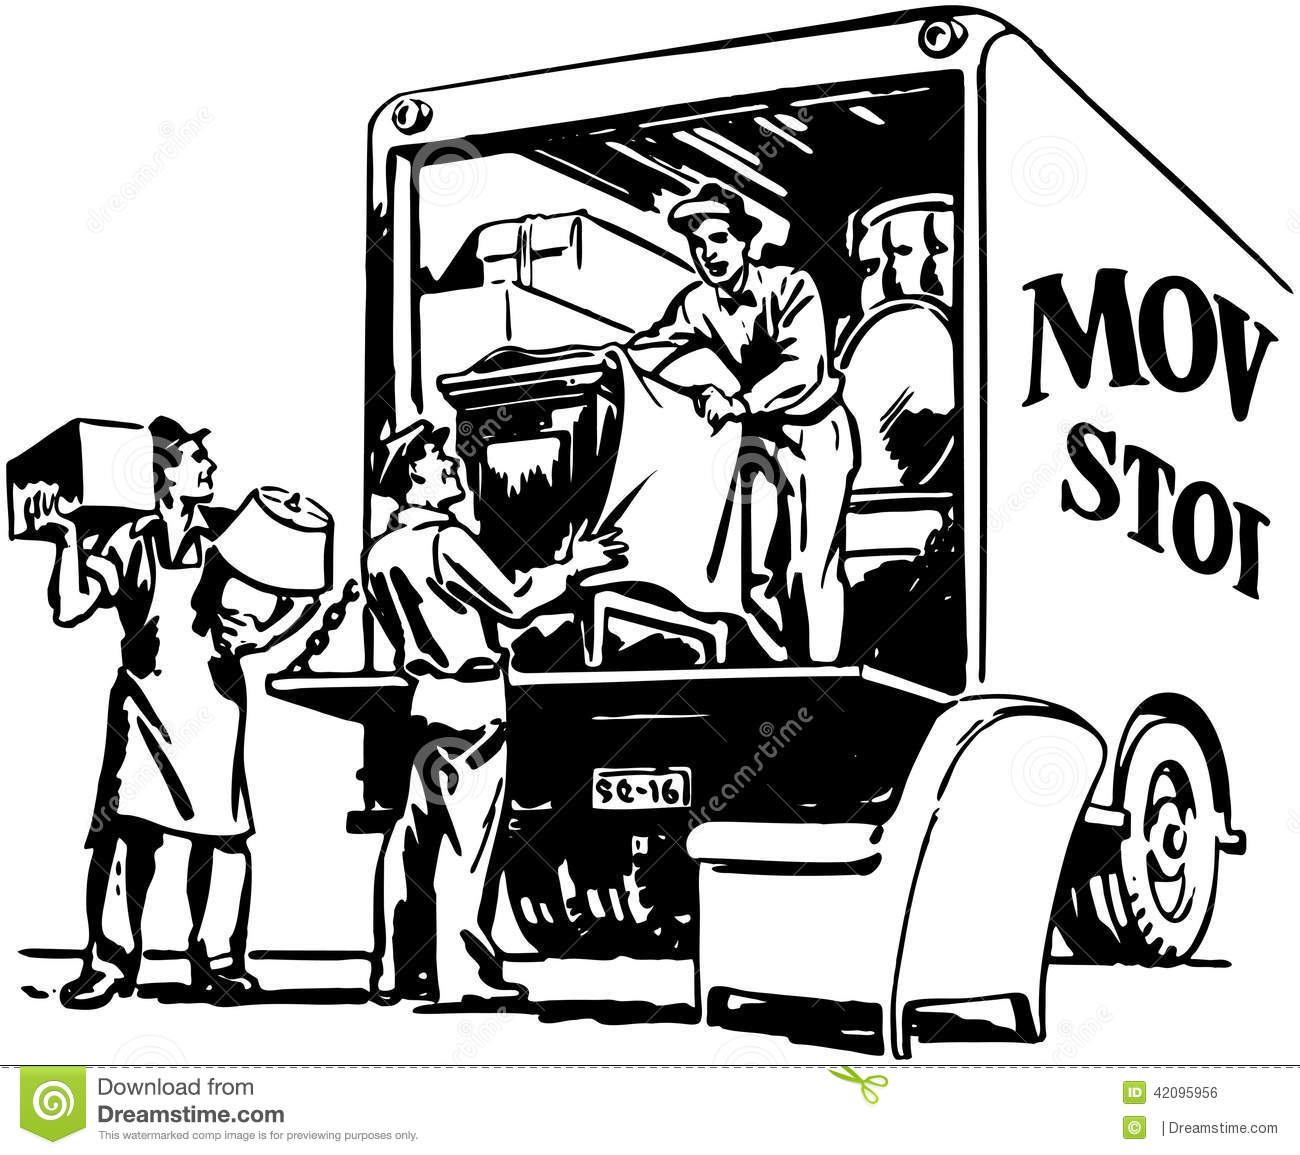 9e611ffb93003f Packing Moving Van stock vector. Illustration of males - 42095956